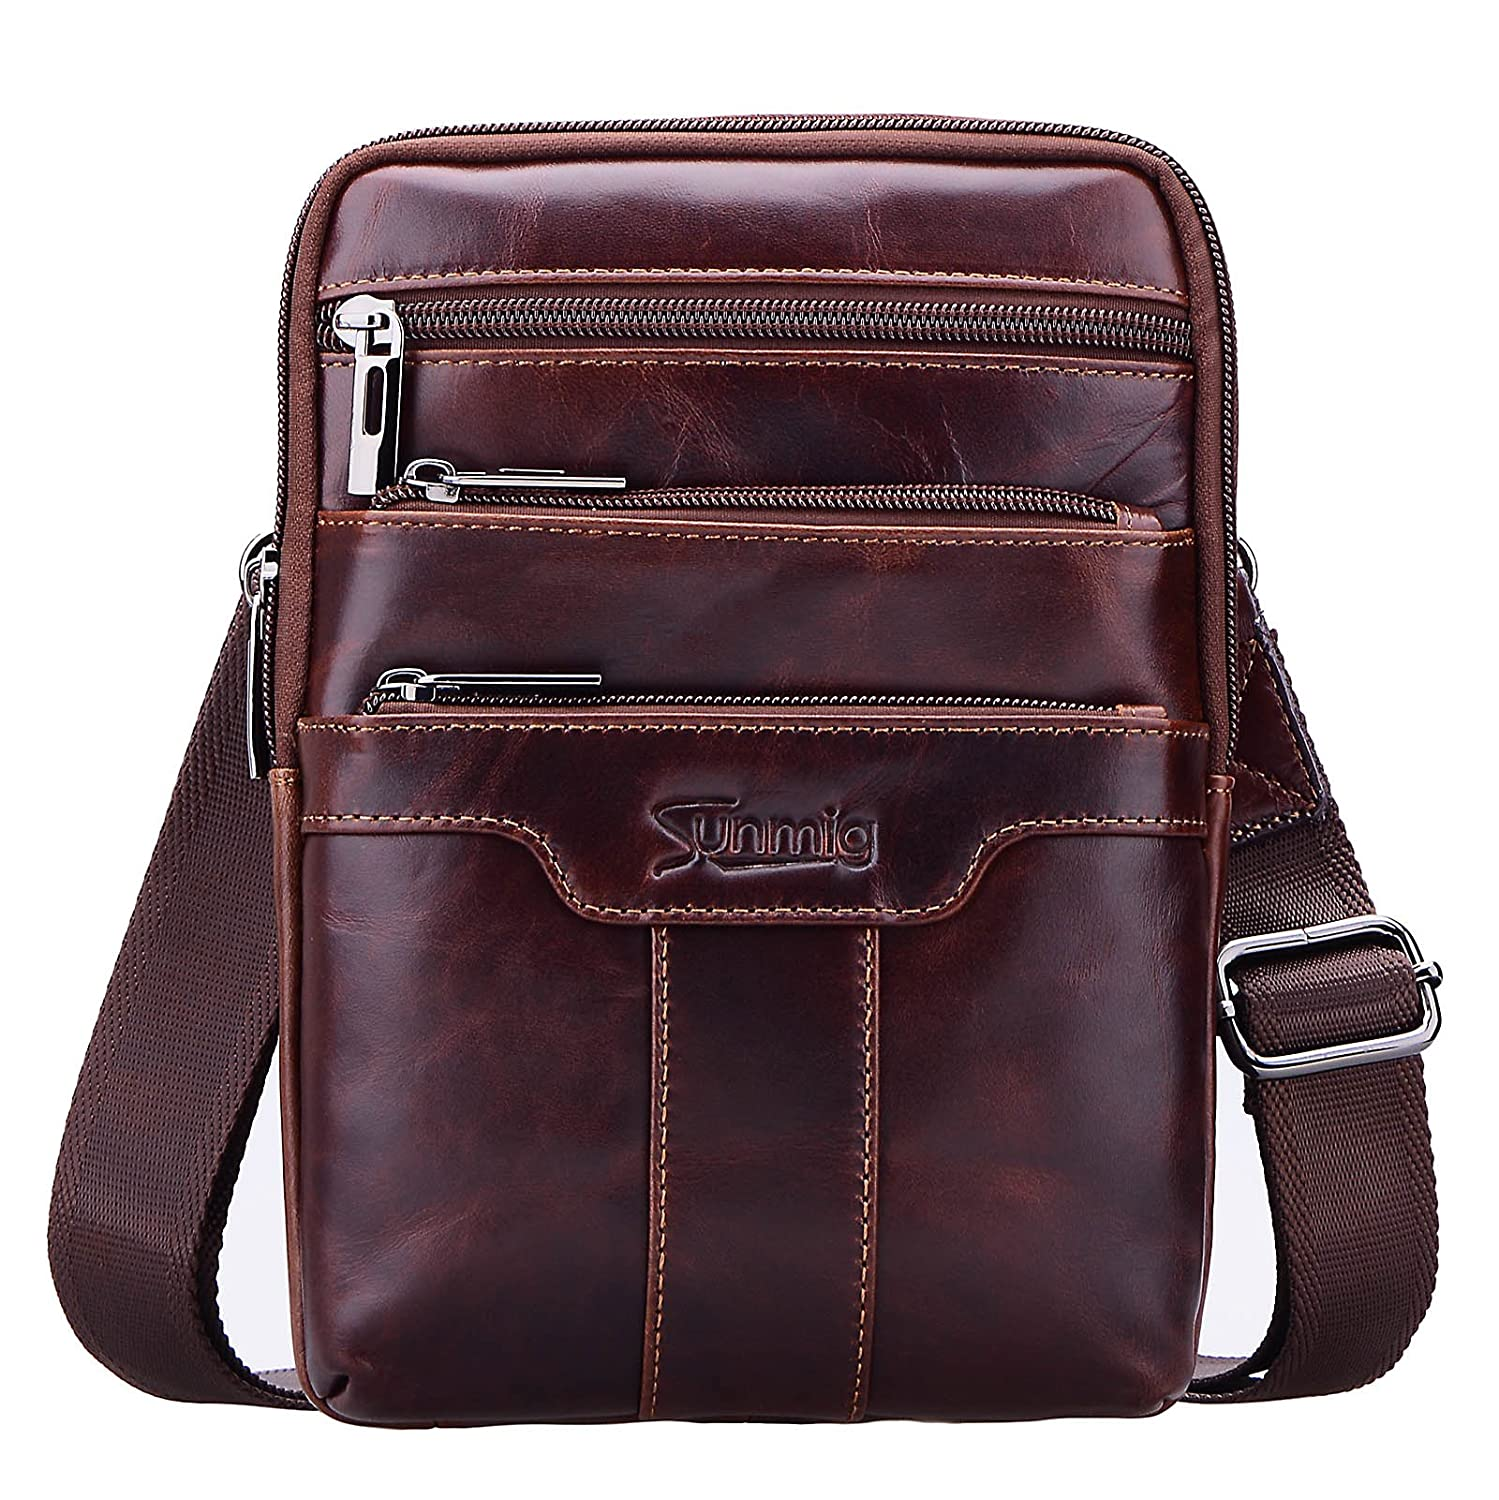 Sunmig Men's Vintage Genuine Leather Shoulder Bag Messenger Bags 10477962